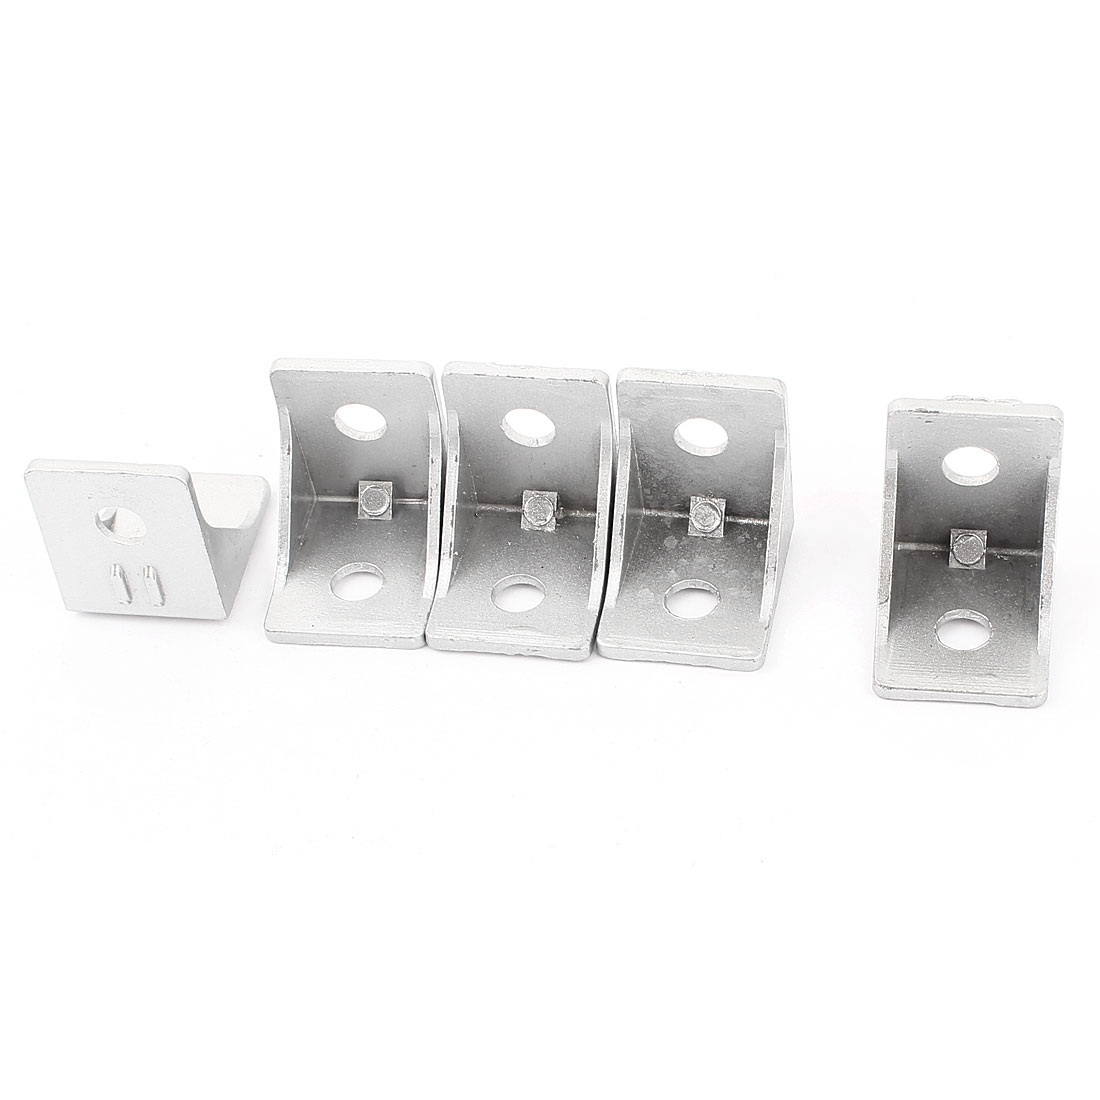 5 Pcs Silver Tone Metal 90 Degree Door Angle Bracket 30mm x 30mm